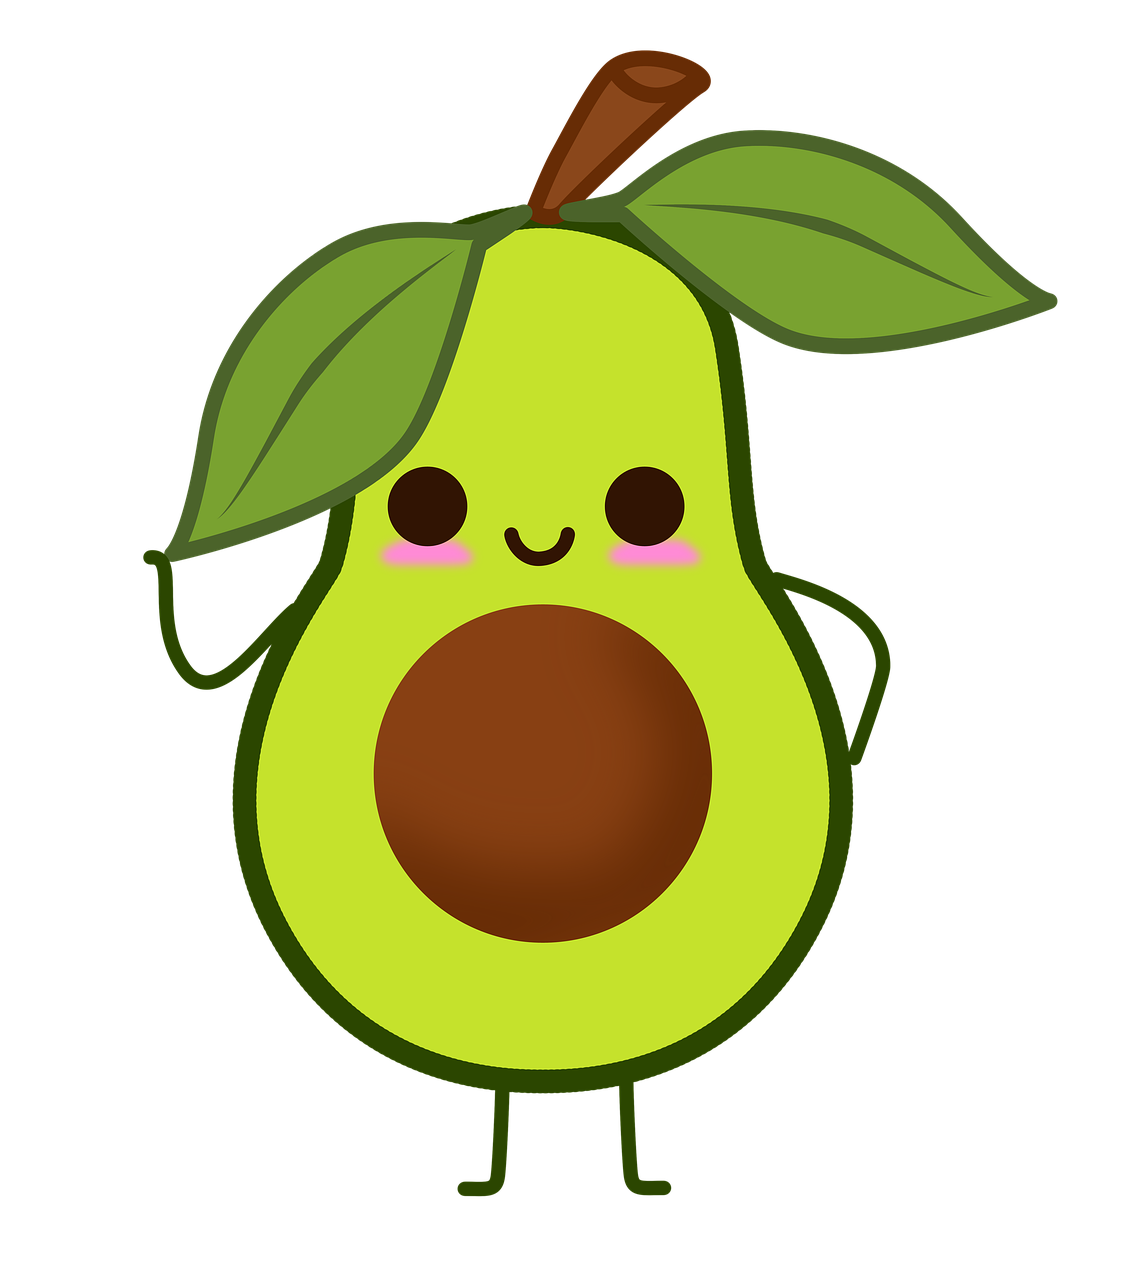 Transparent avocado animated. Uncategorized archives blistering blue